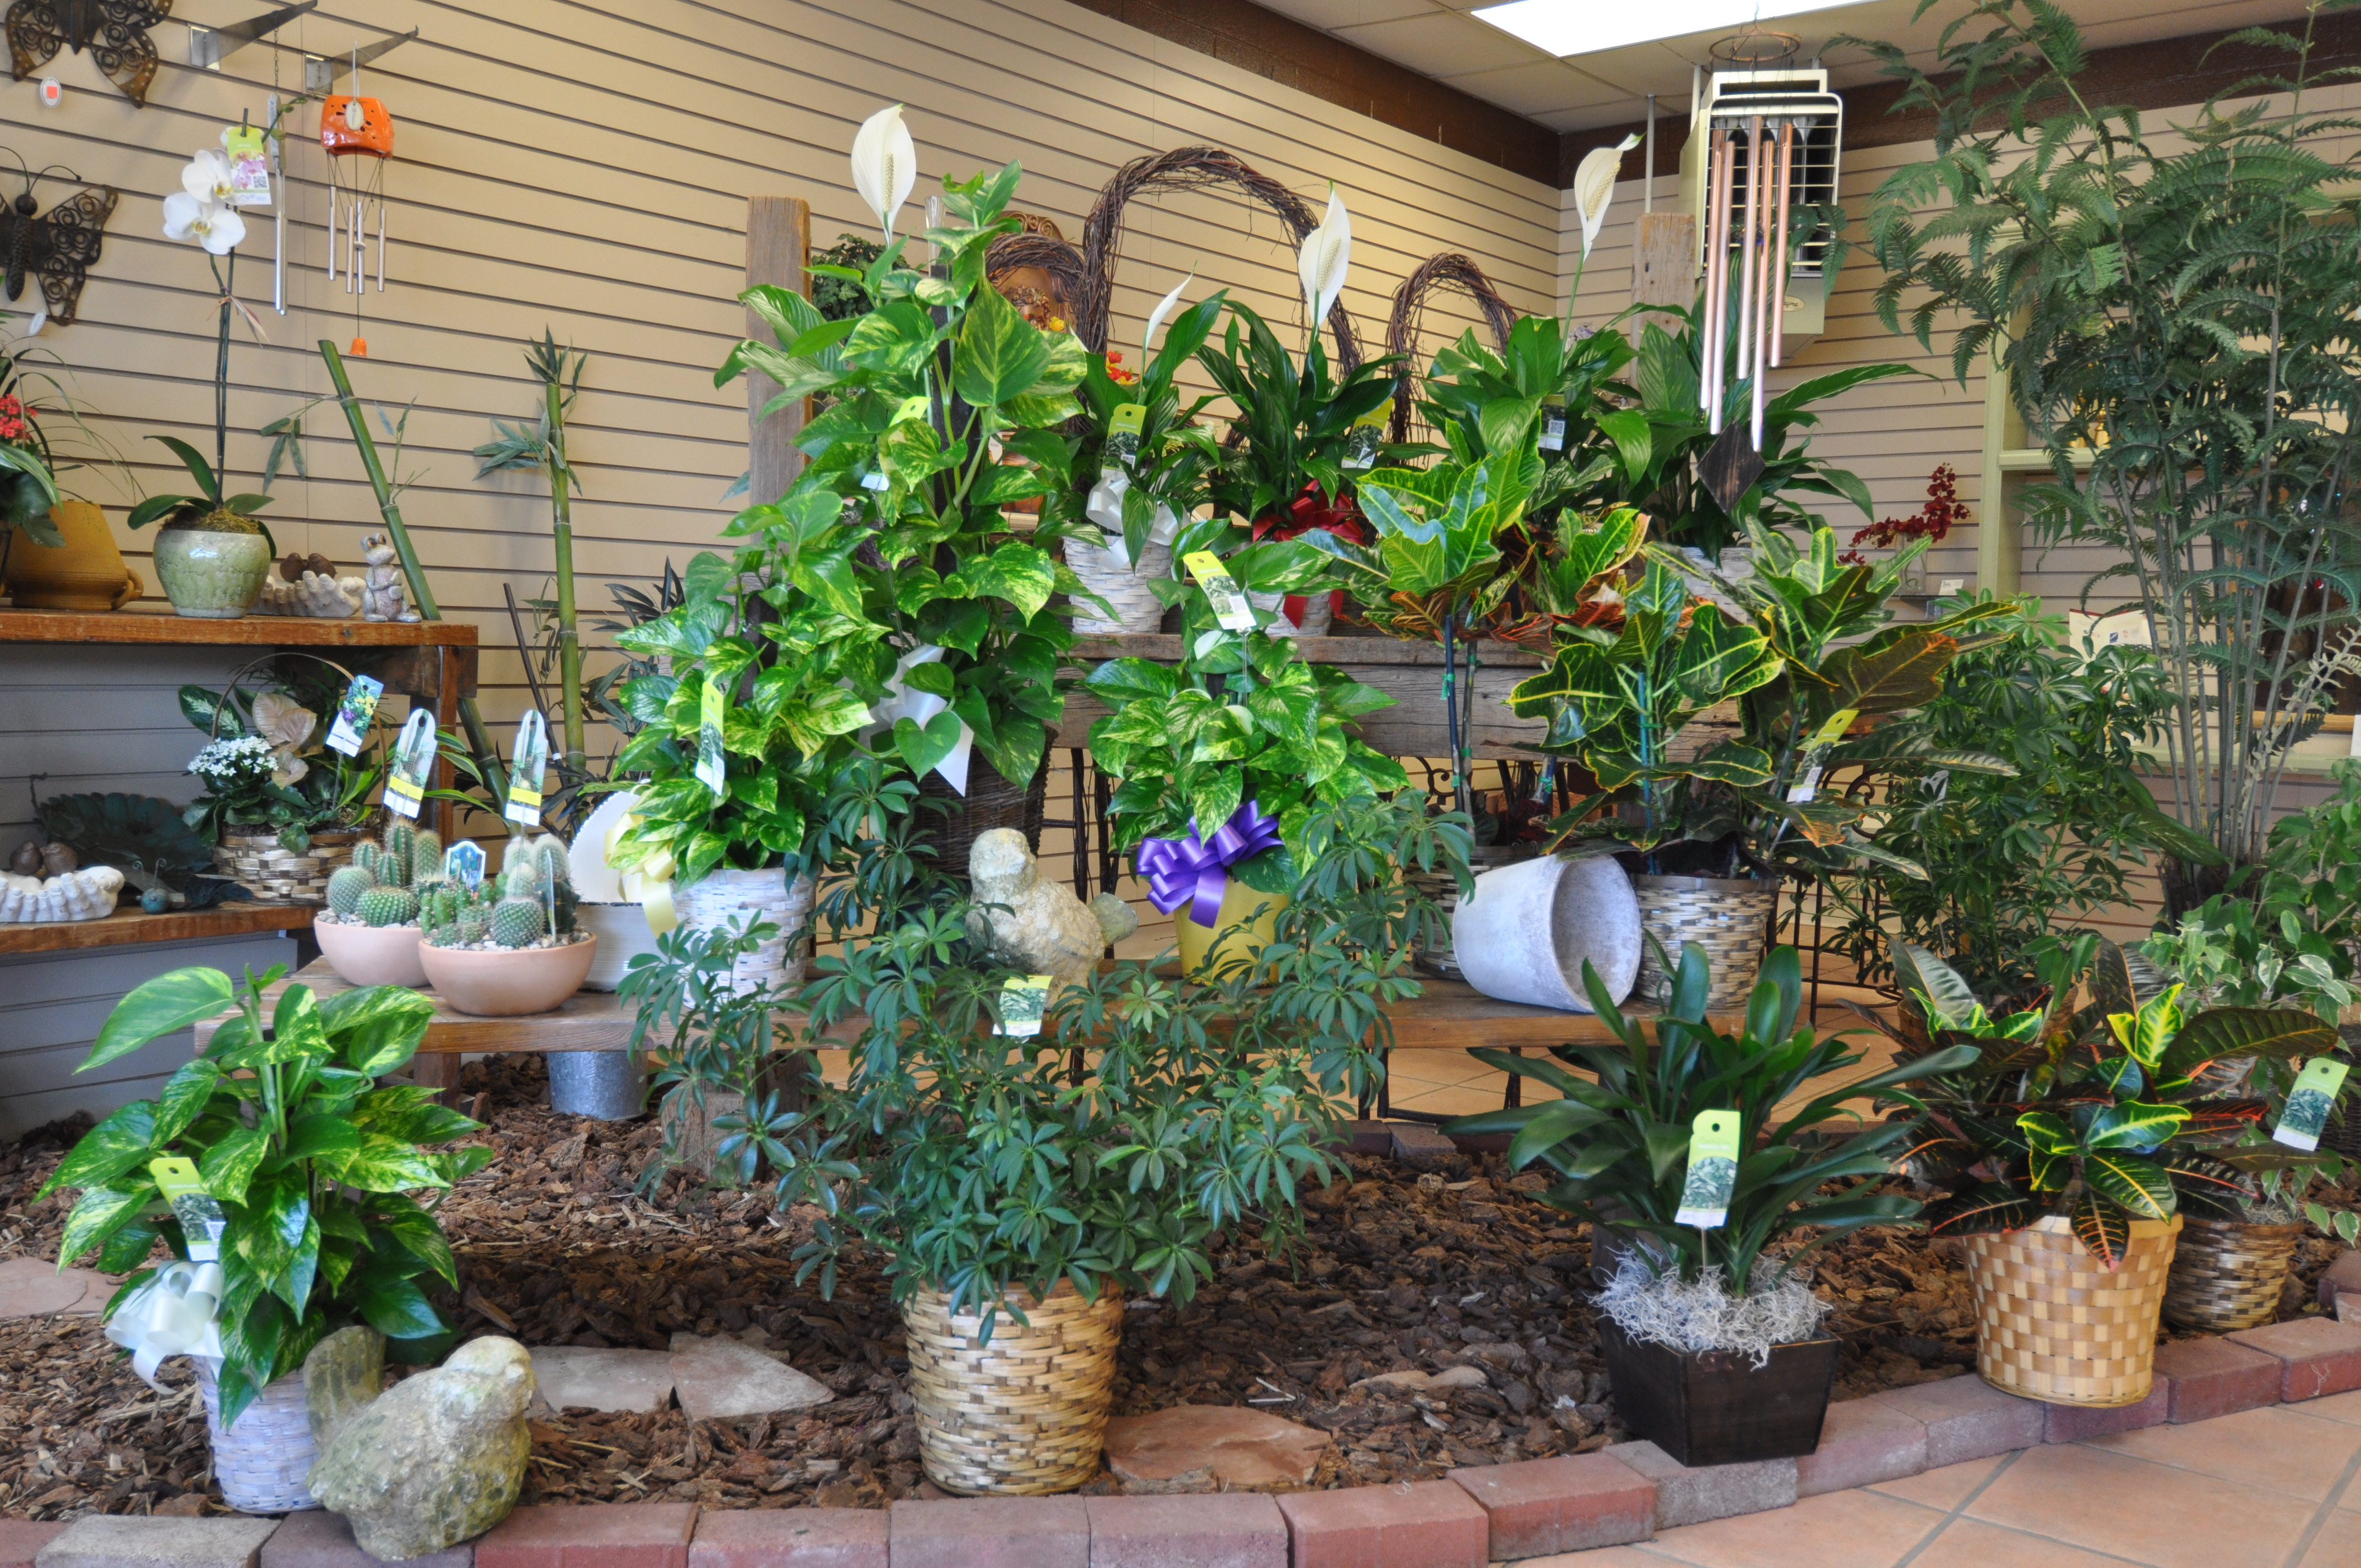 Peoples Flower Shops Far North Location image 12